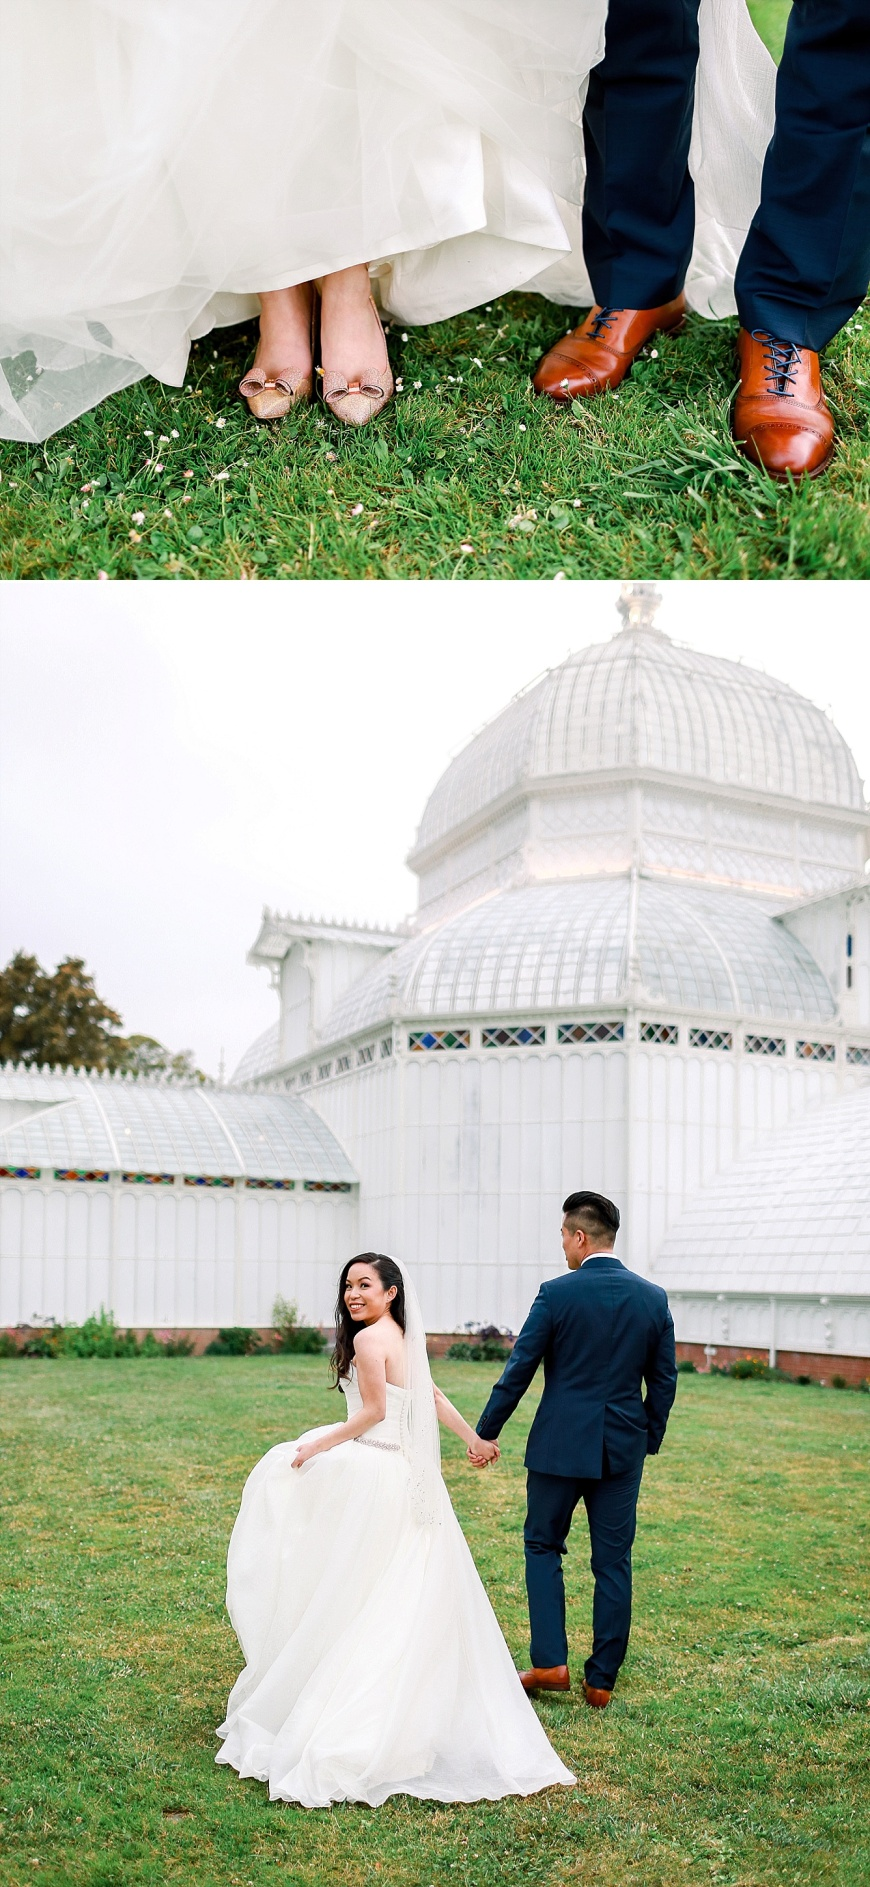 Conservatory-of-Flowers-San-Francisco-Wedding-Photographer (1066).jpg